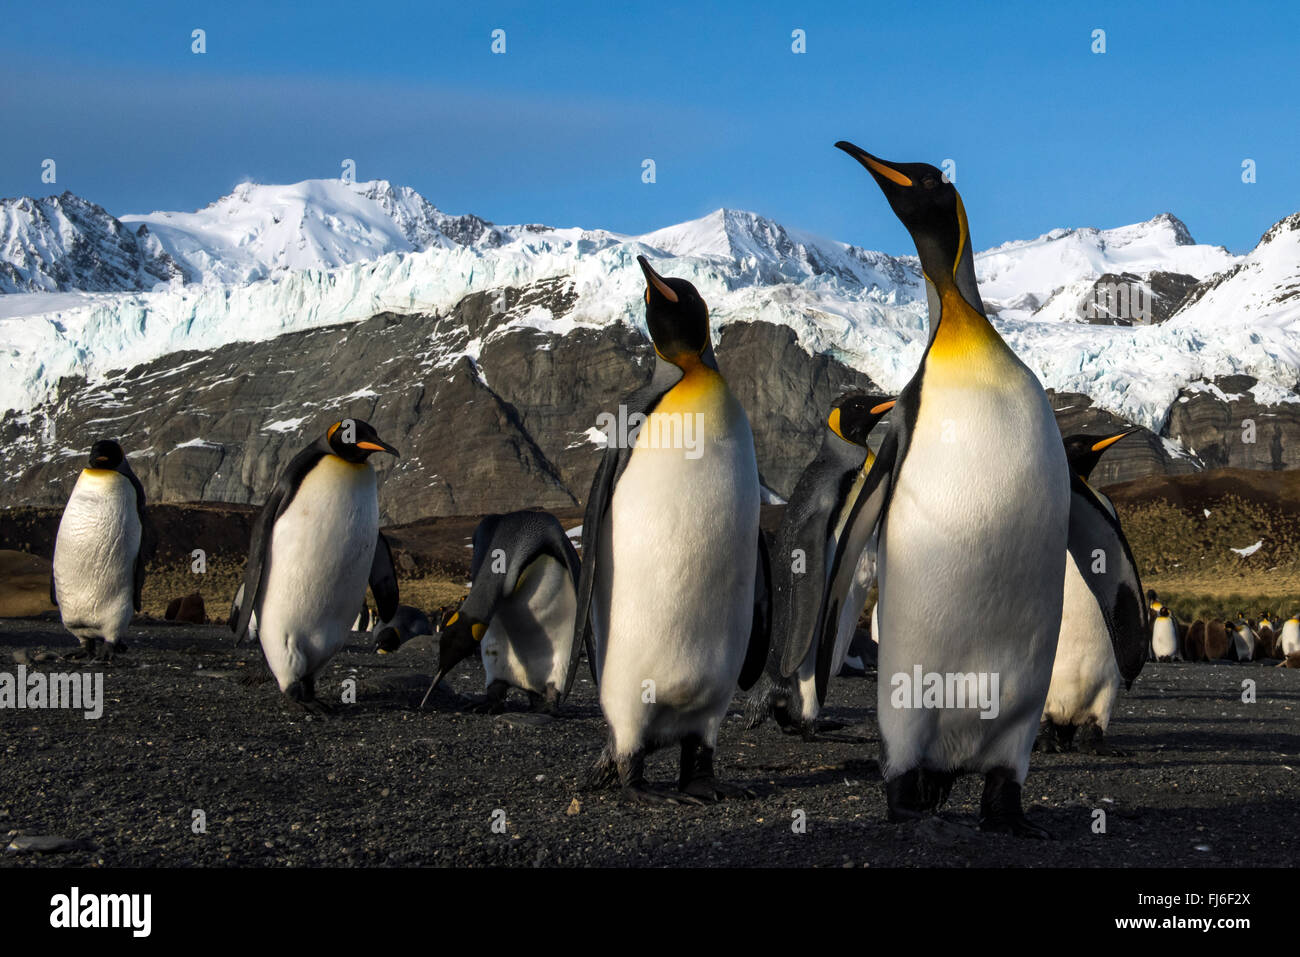 King Penguin (Aptenodytes patagonicus) adults on the beach Gold Harbour, South Georgia - Stock Image